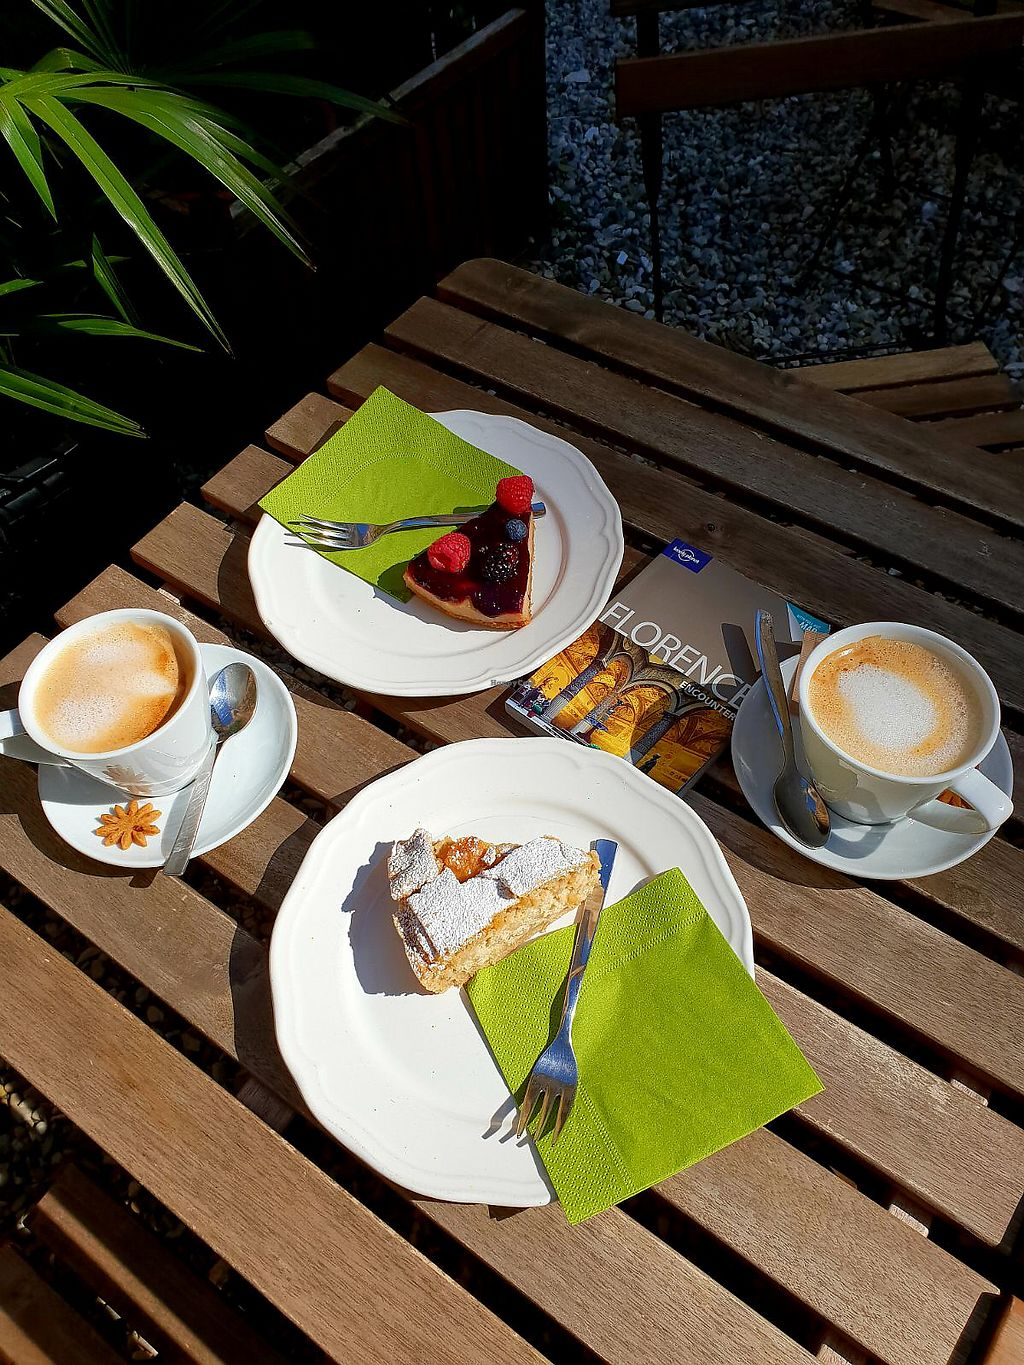 """Photo of PappaGioia  by <a href=""""/members/profile/suzyseraphina"""">suzyseraphina</a> <br/>Vegan breakfast delights <br/> March 25, 2018  - <a href='/contact/abuse/image/99034/375749'>Report</a>"""